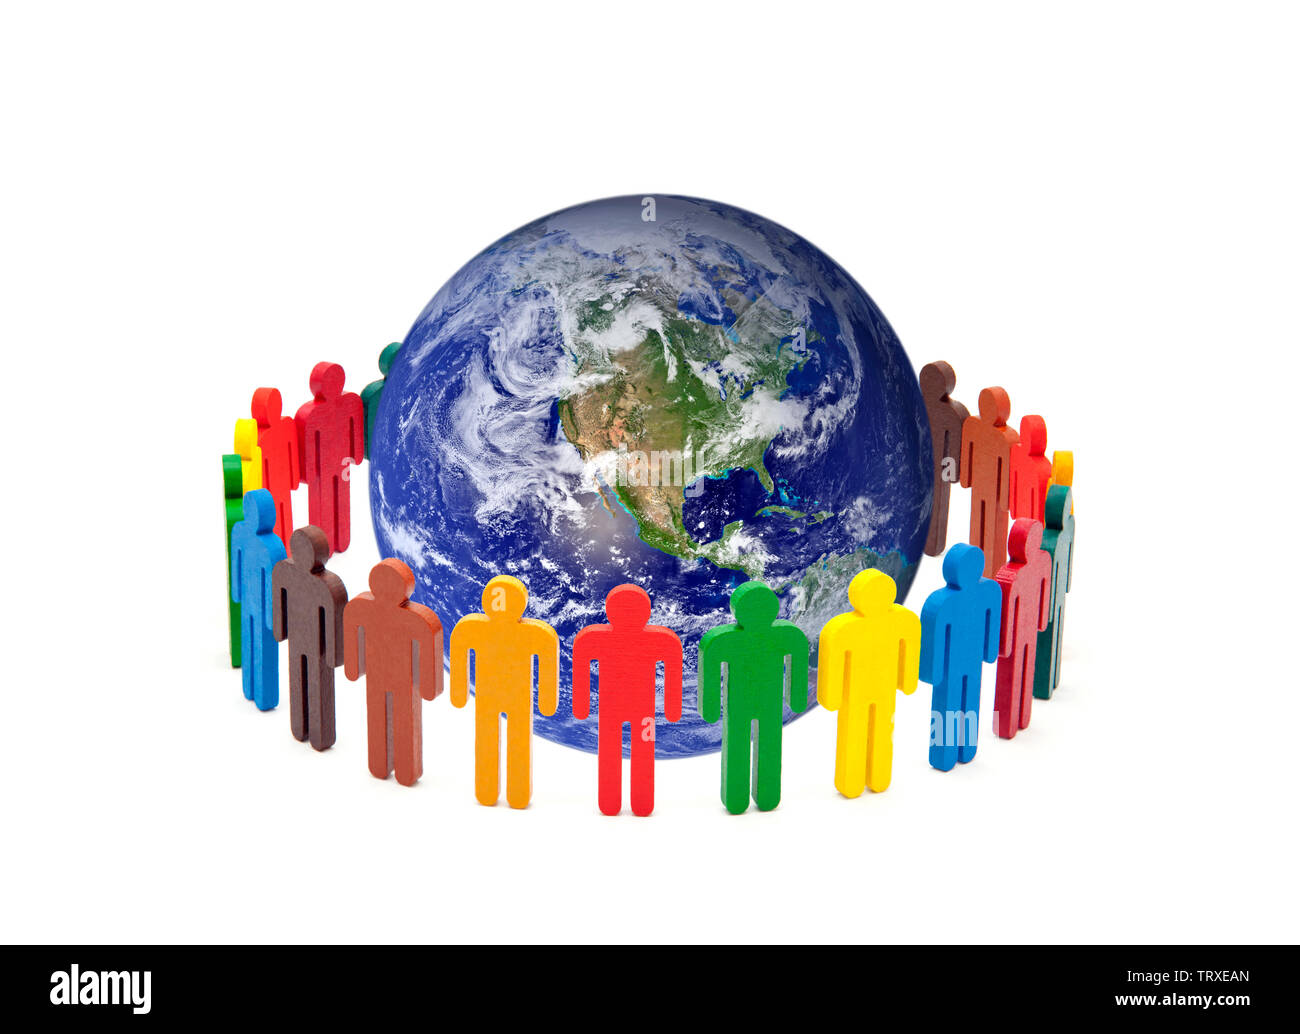 Circle of colourful people around the globe on white background. Earth photo provided by Nasa. - Stock Image